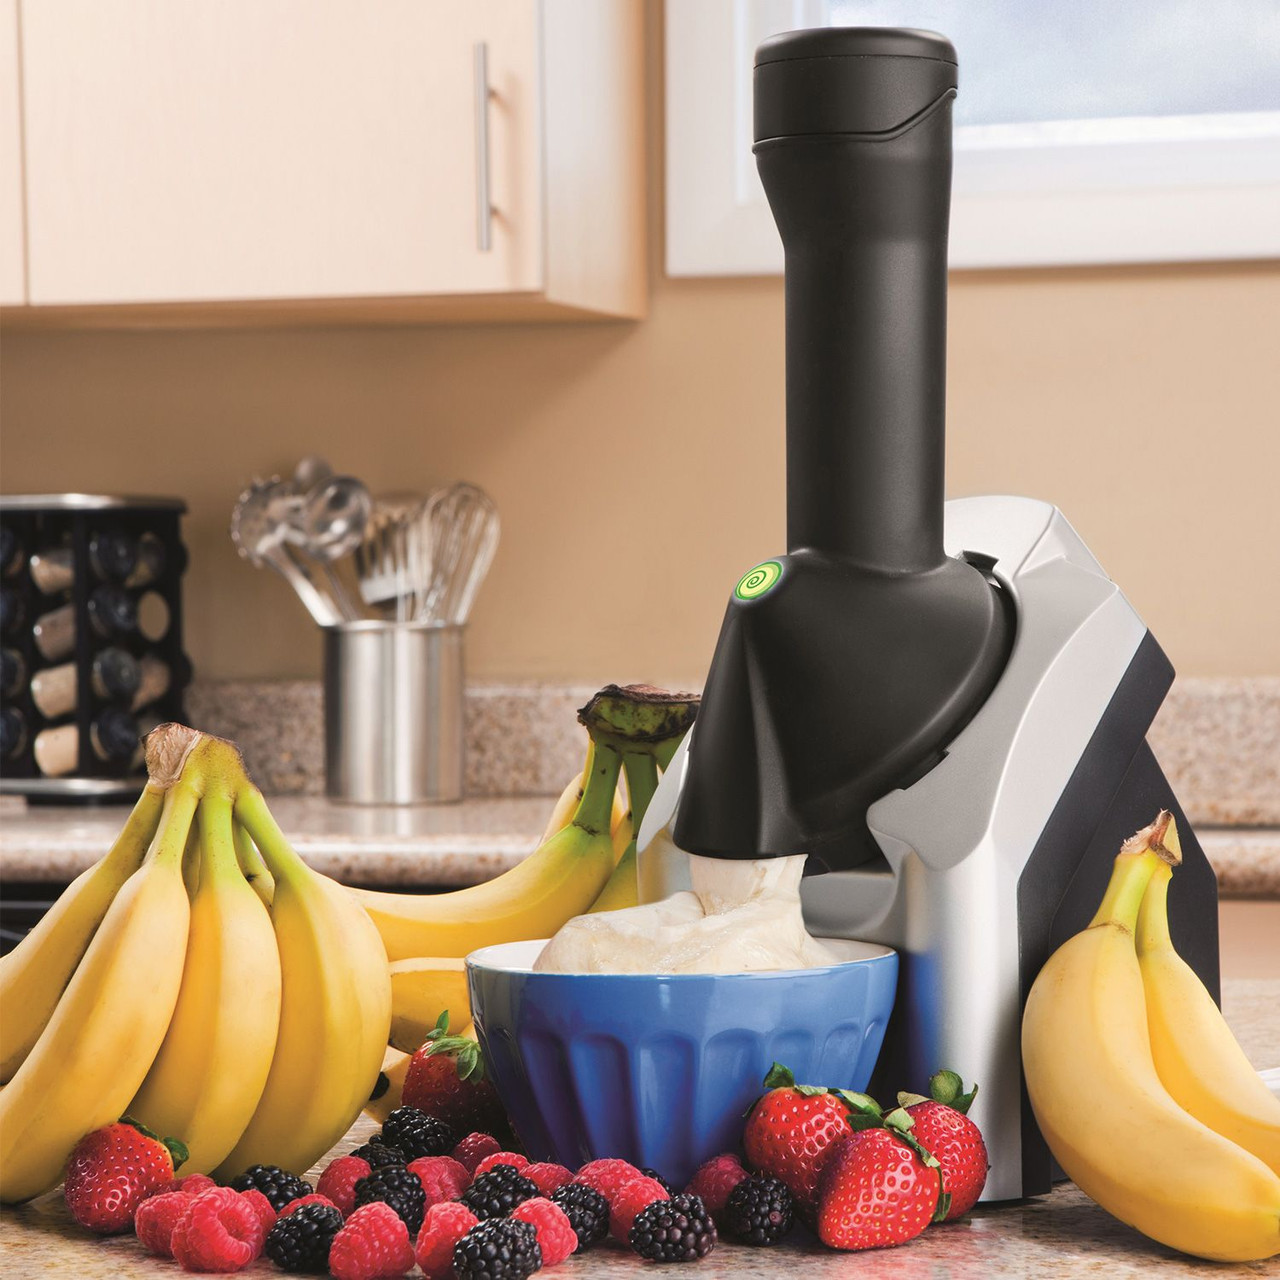 Мороженица Yonanas Healthy Dessert Maker, 200Вт, серая